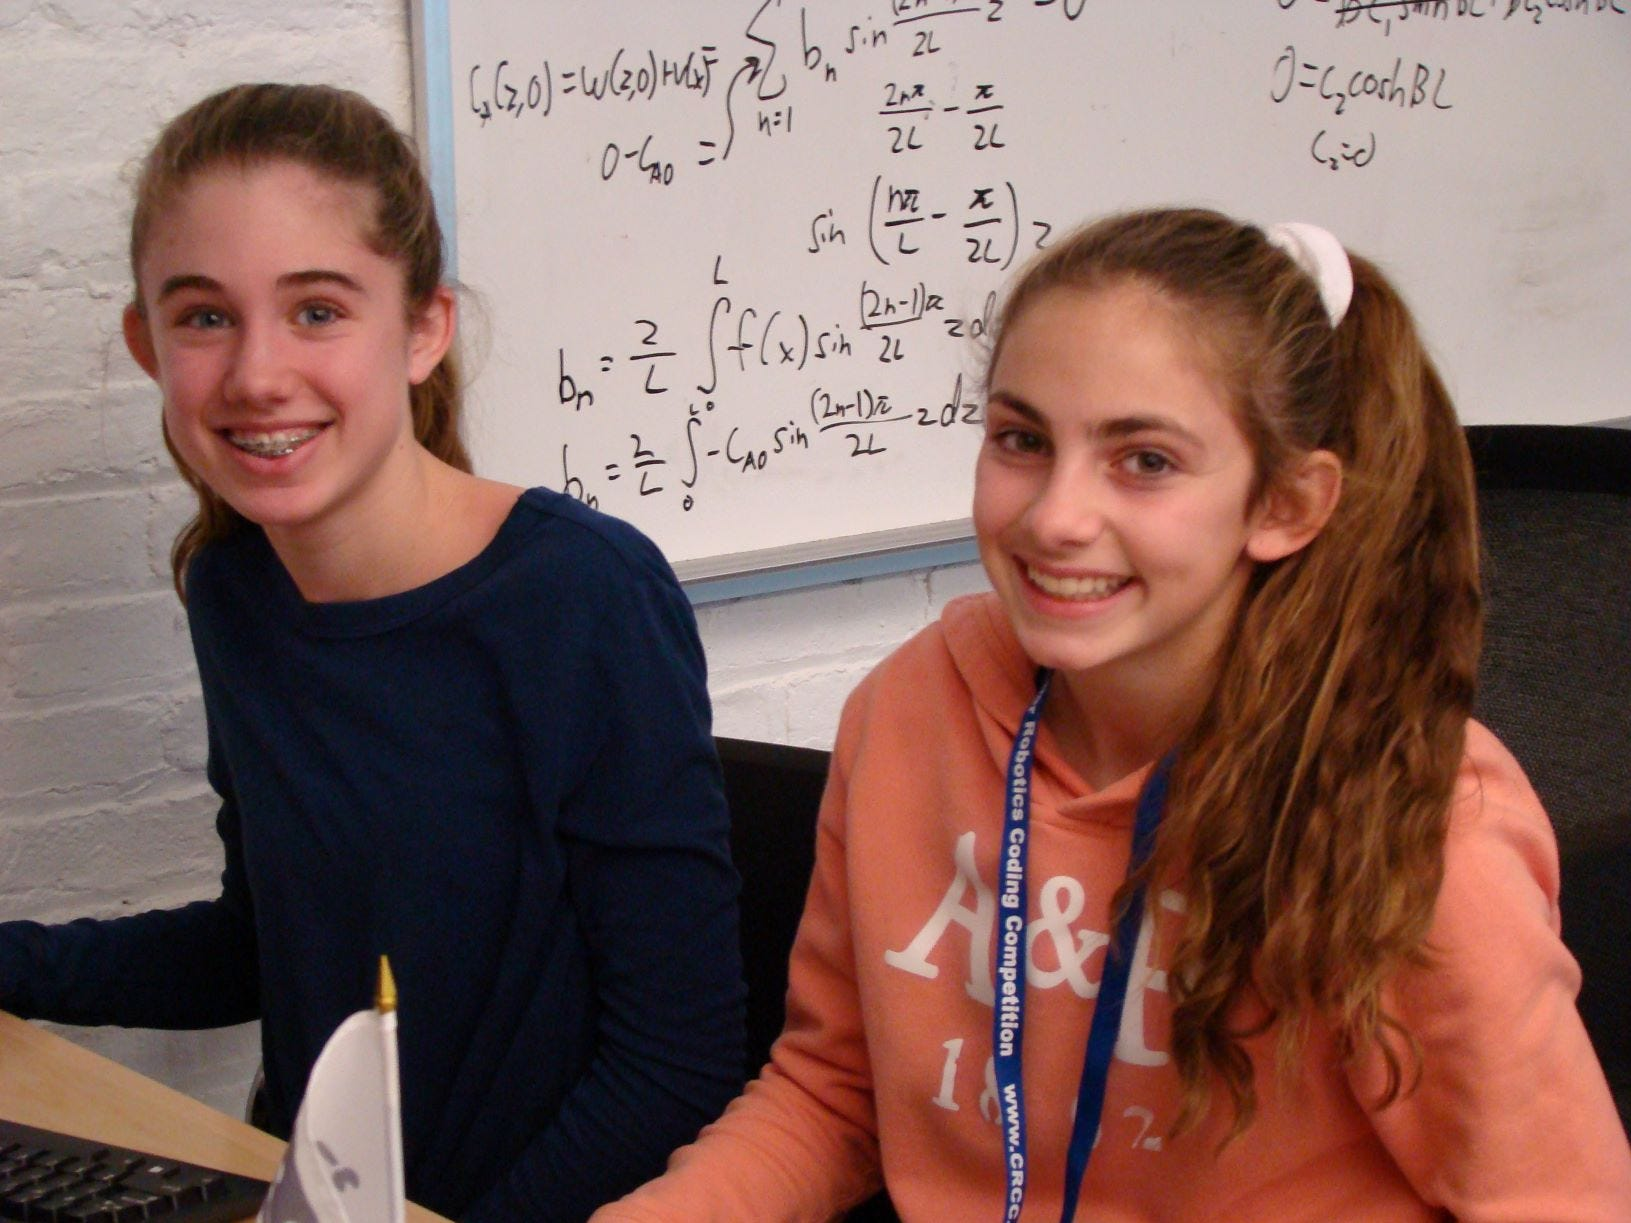 Edison 8 grader Catherine Collins (left) and Gabriela Gil placed 3rd in the 2018 New Jersey Cyber Robotics Coding Competition Finals on Dec. 14 at NJIT.